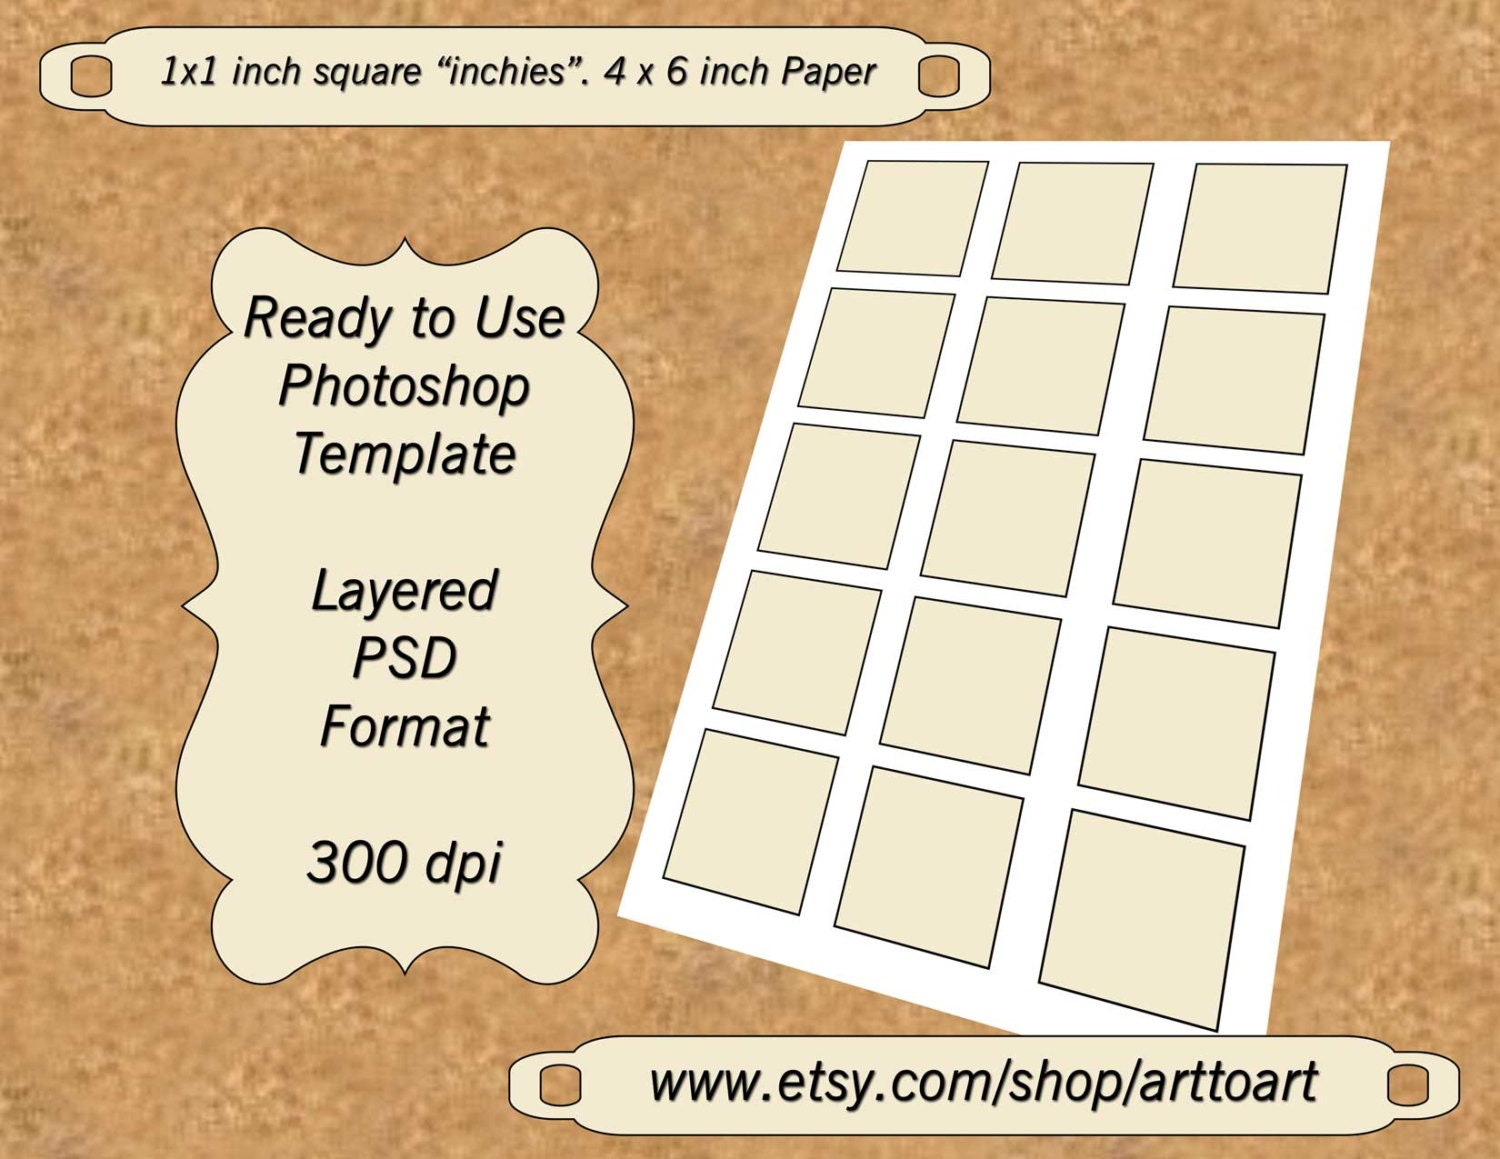 etsy shop policies template - digital template collage 1 inch squares inchies by arttoart